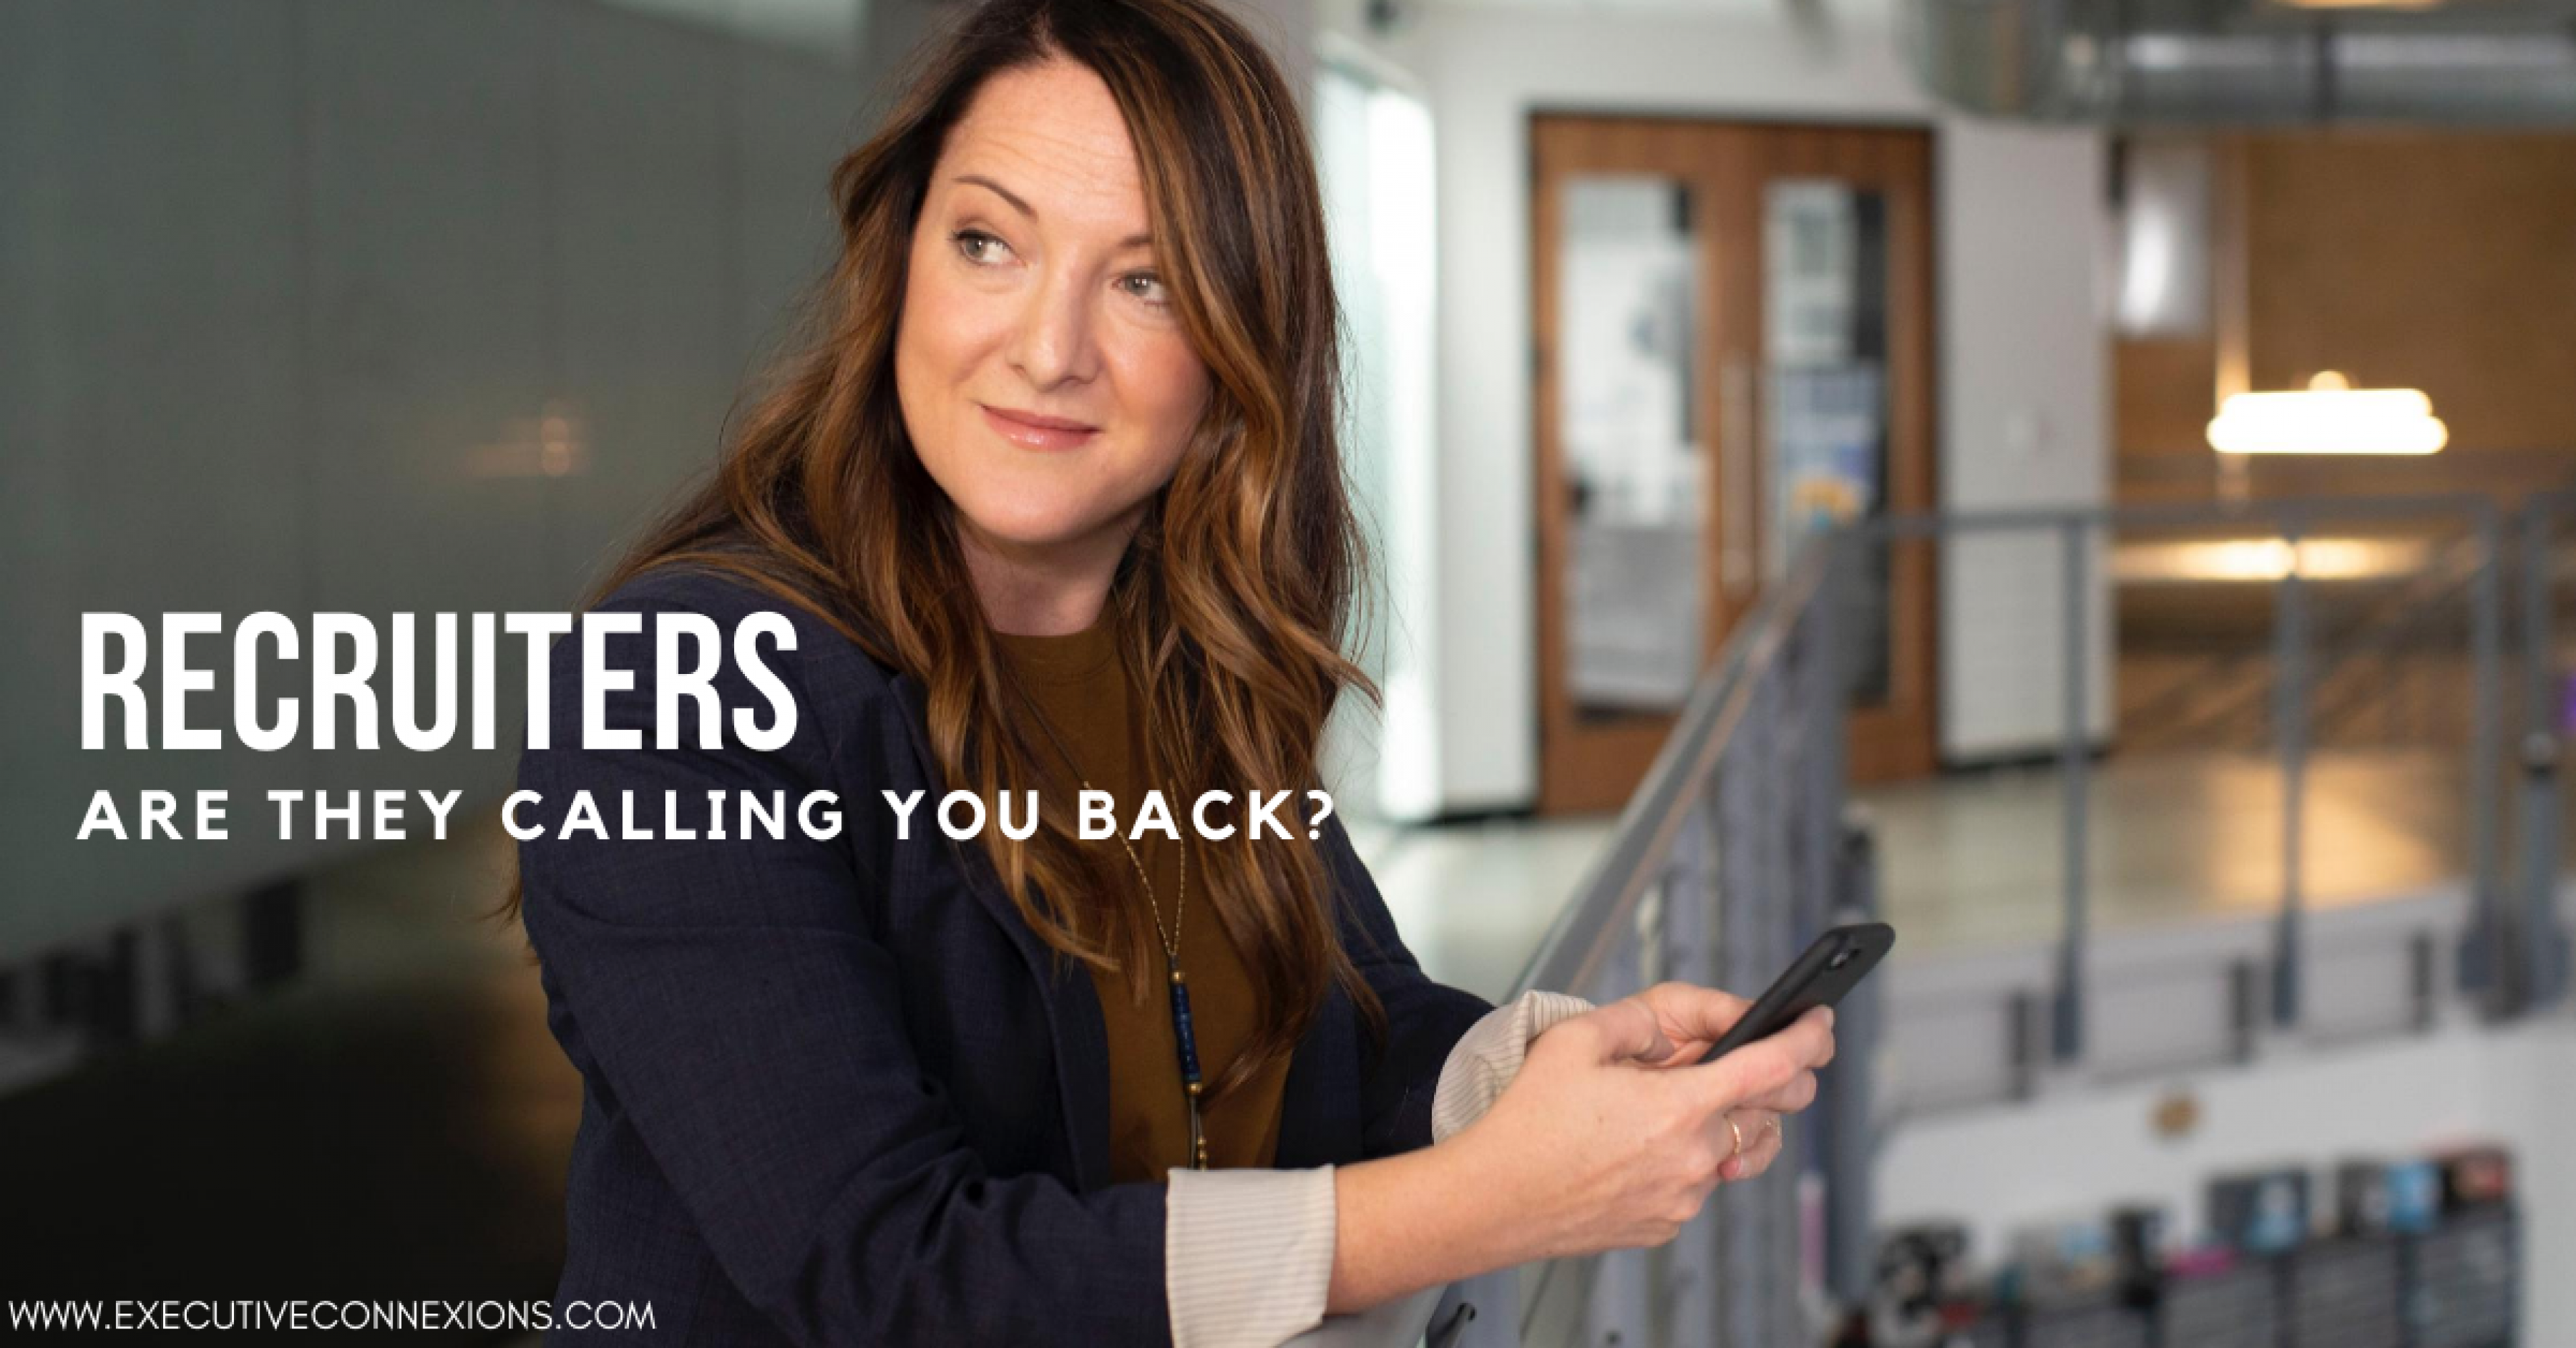 Why don't recruiters call me back?